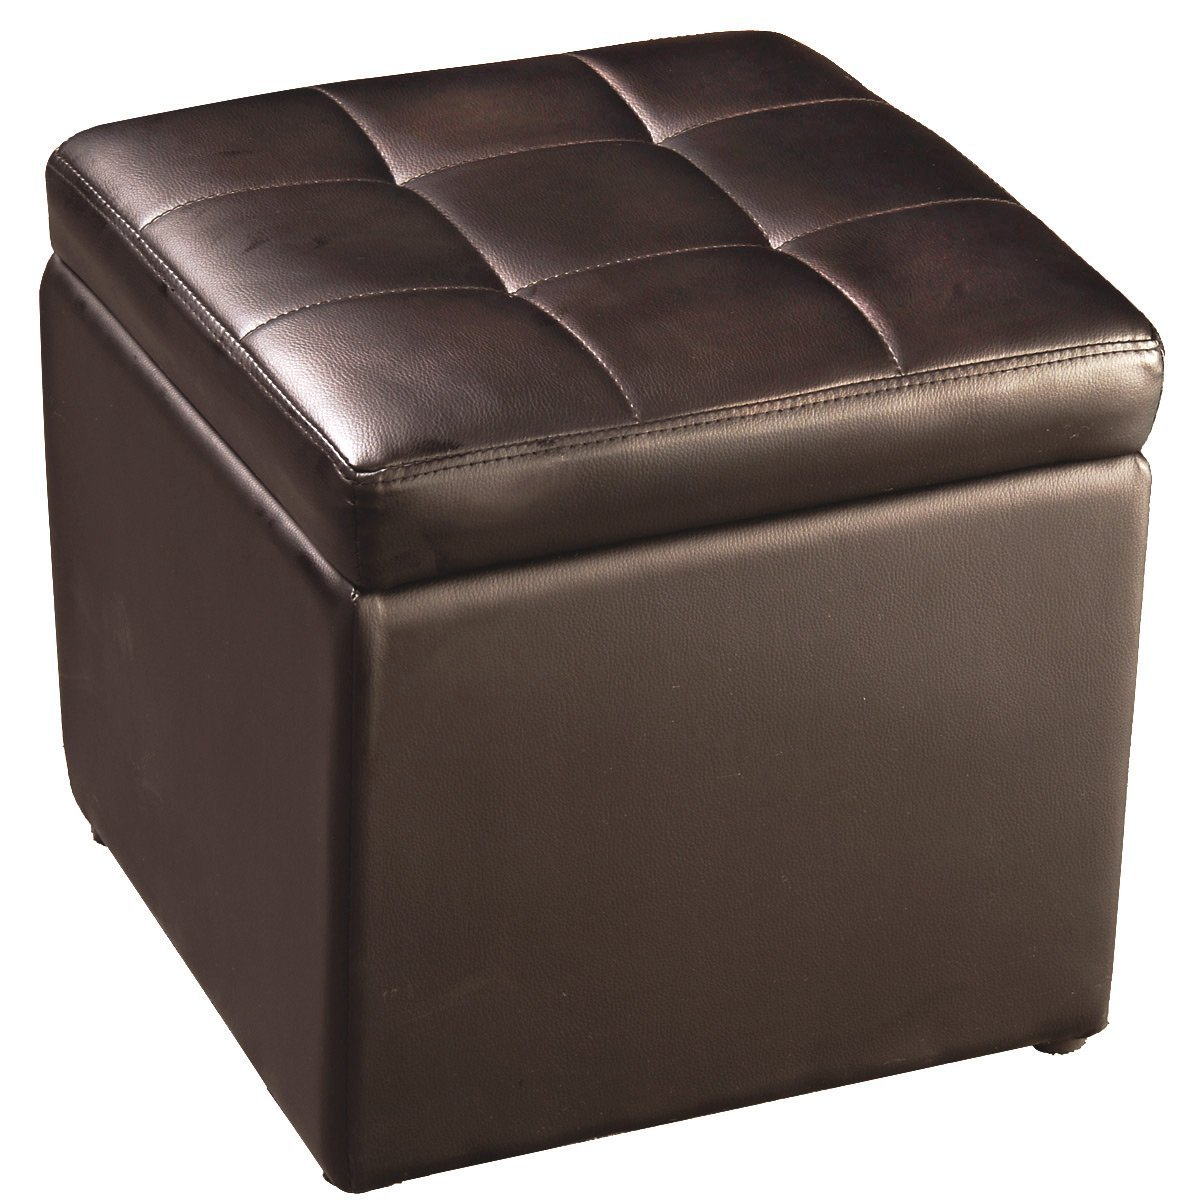 FDS Faux Leather Folding Ottoman Pouffe Storage Single Seat Toy Box Foot Stool (2 colours) (Brown) FDS-123